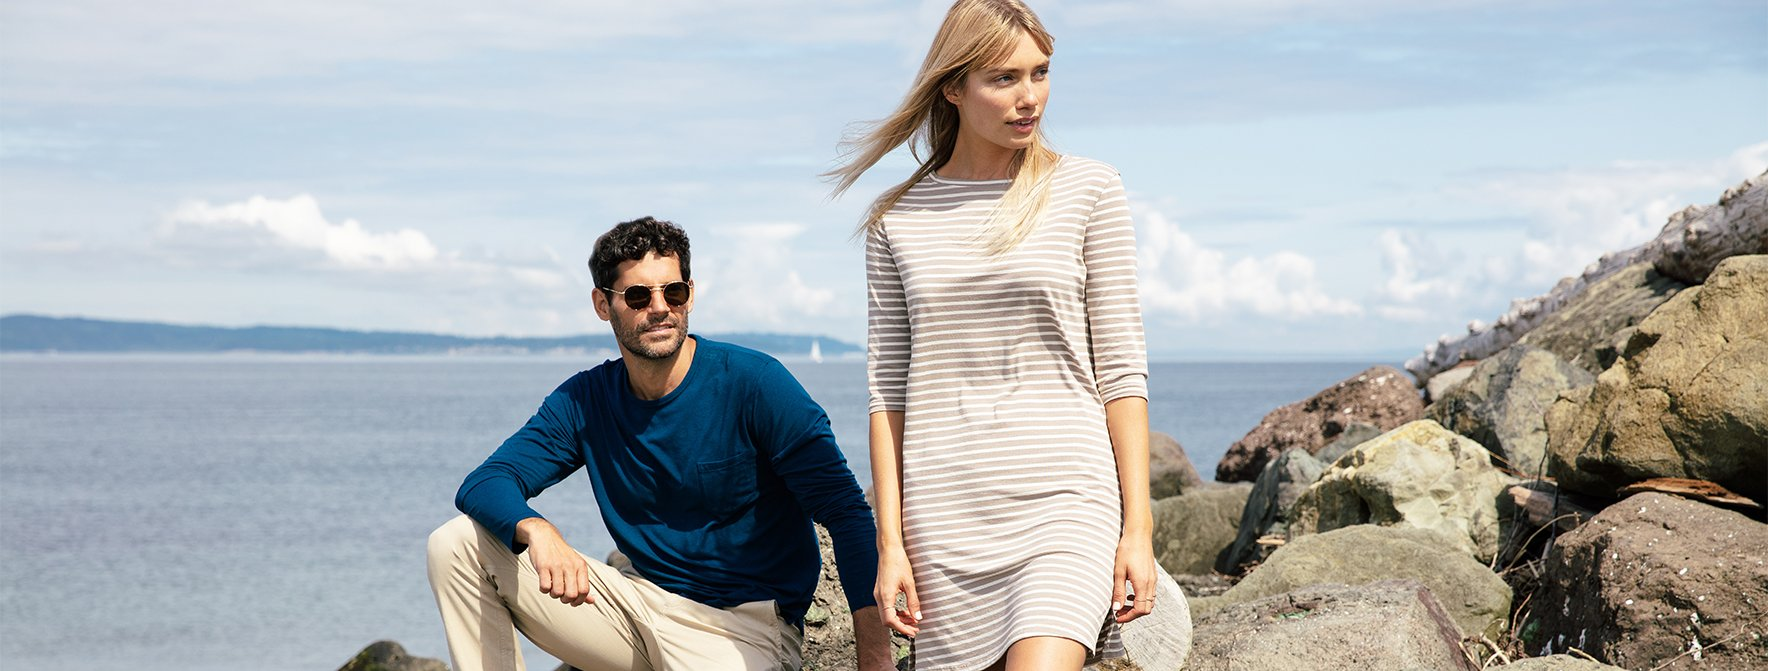 tasc Performance takes a day trip to the coast in new select Fall styles